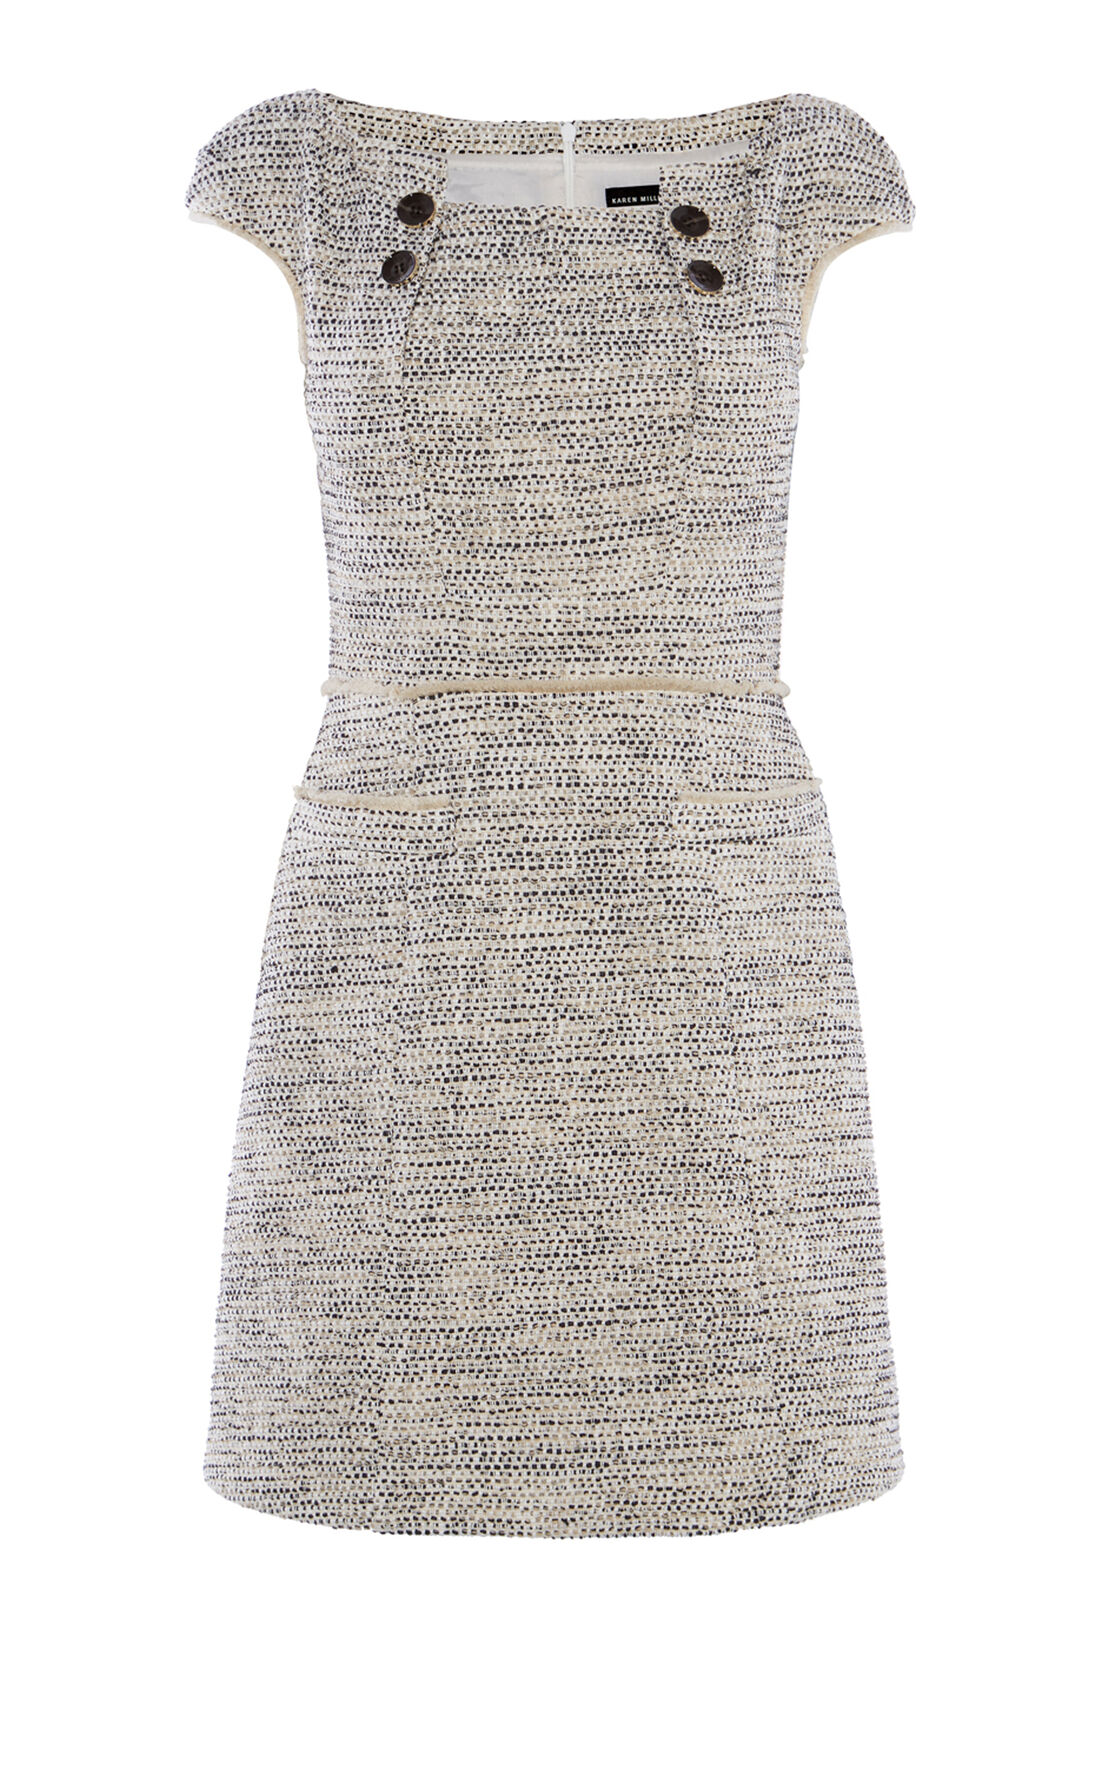 Karen Millen, BOUCLÉ TWEED SHIFT DRESS Blk&Wht 0